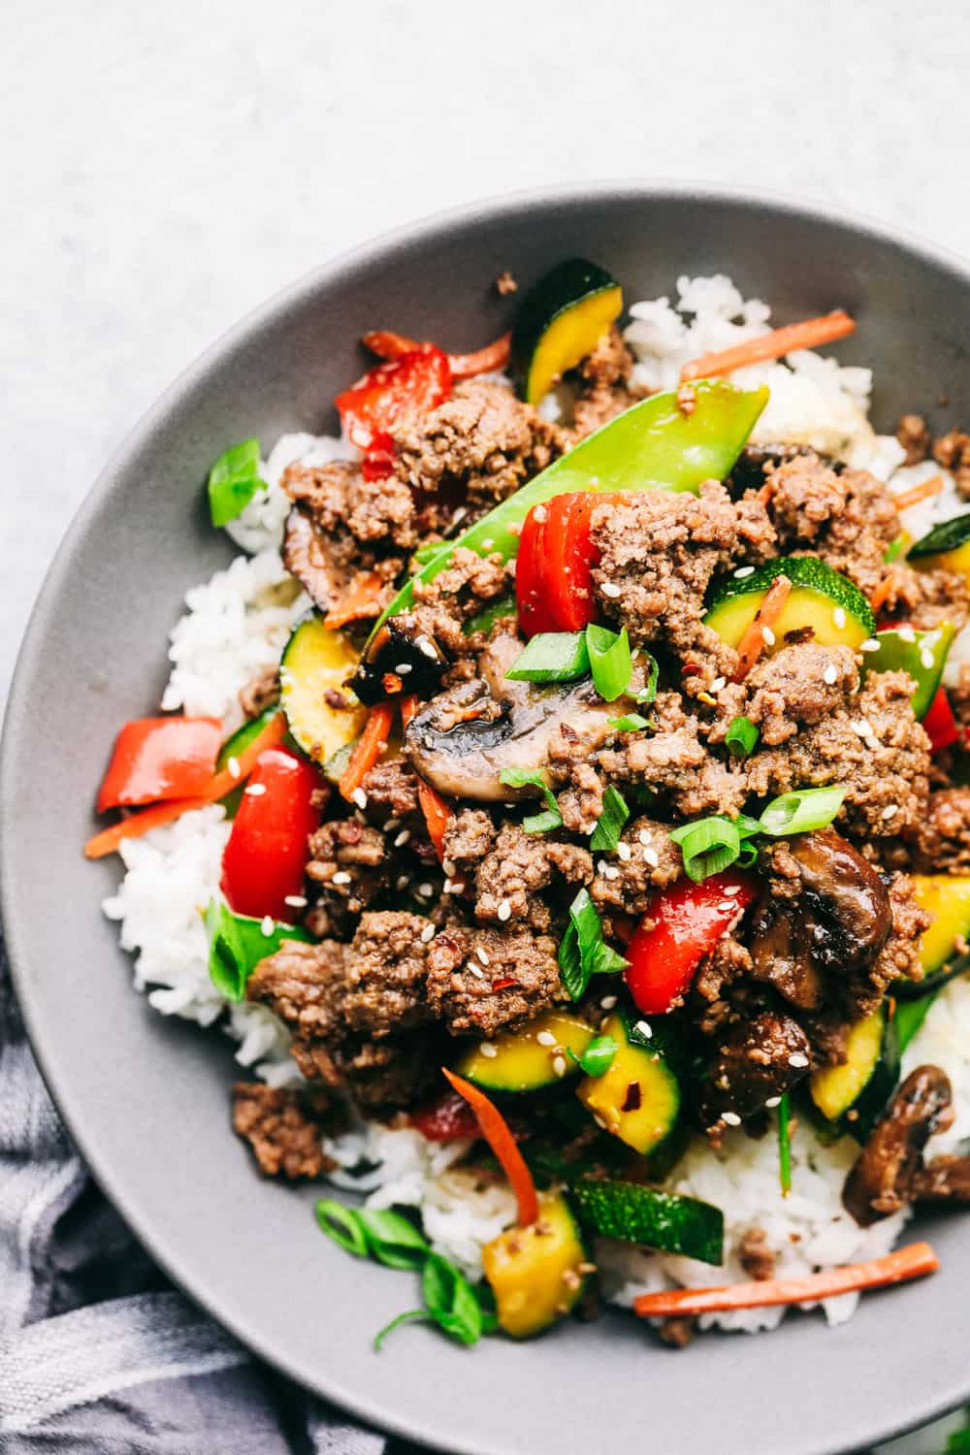 Korean Ground Beef Stir Fry - Recipes Minced Meat Healthy